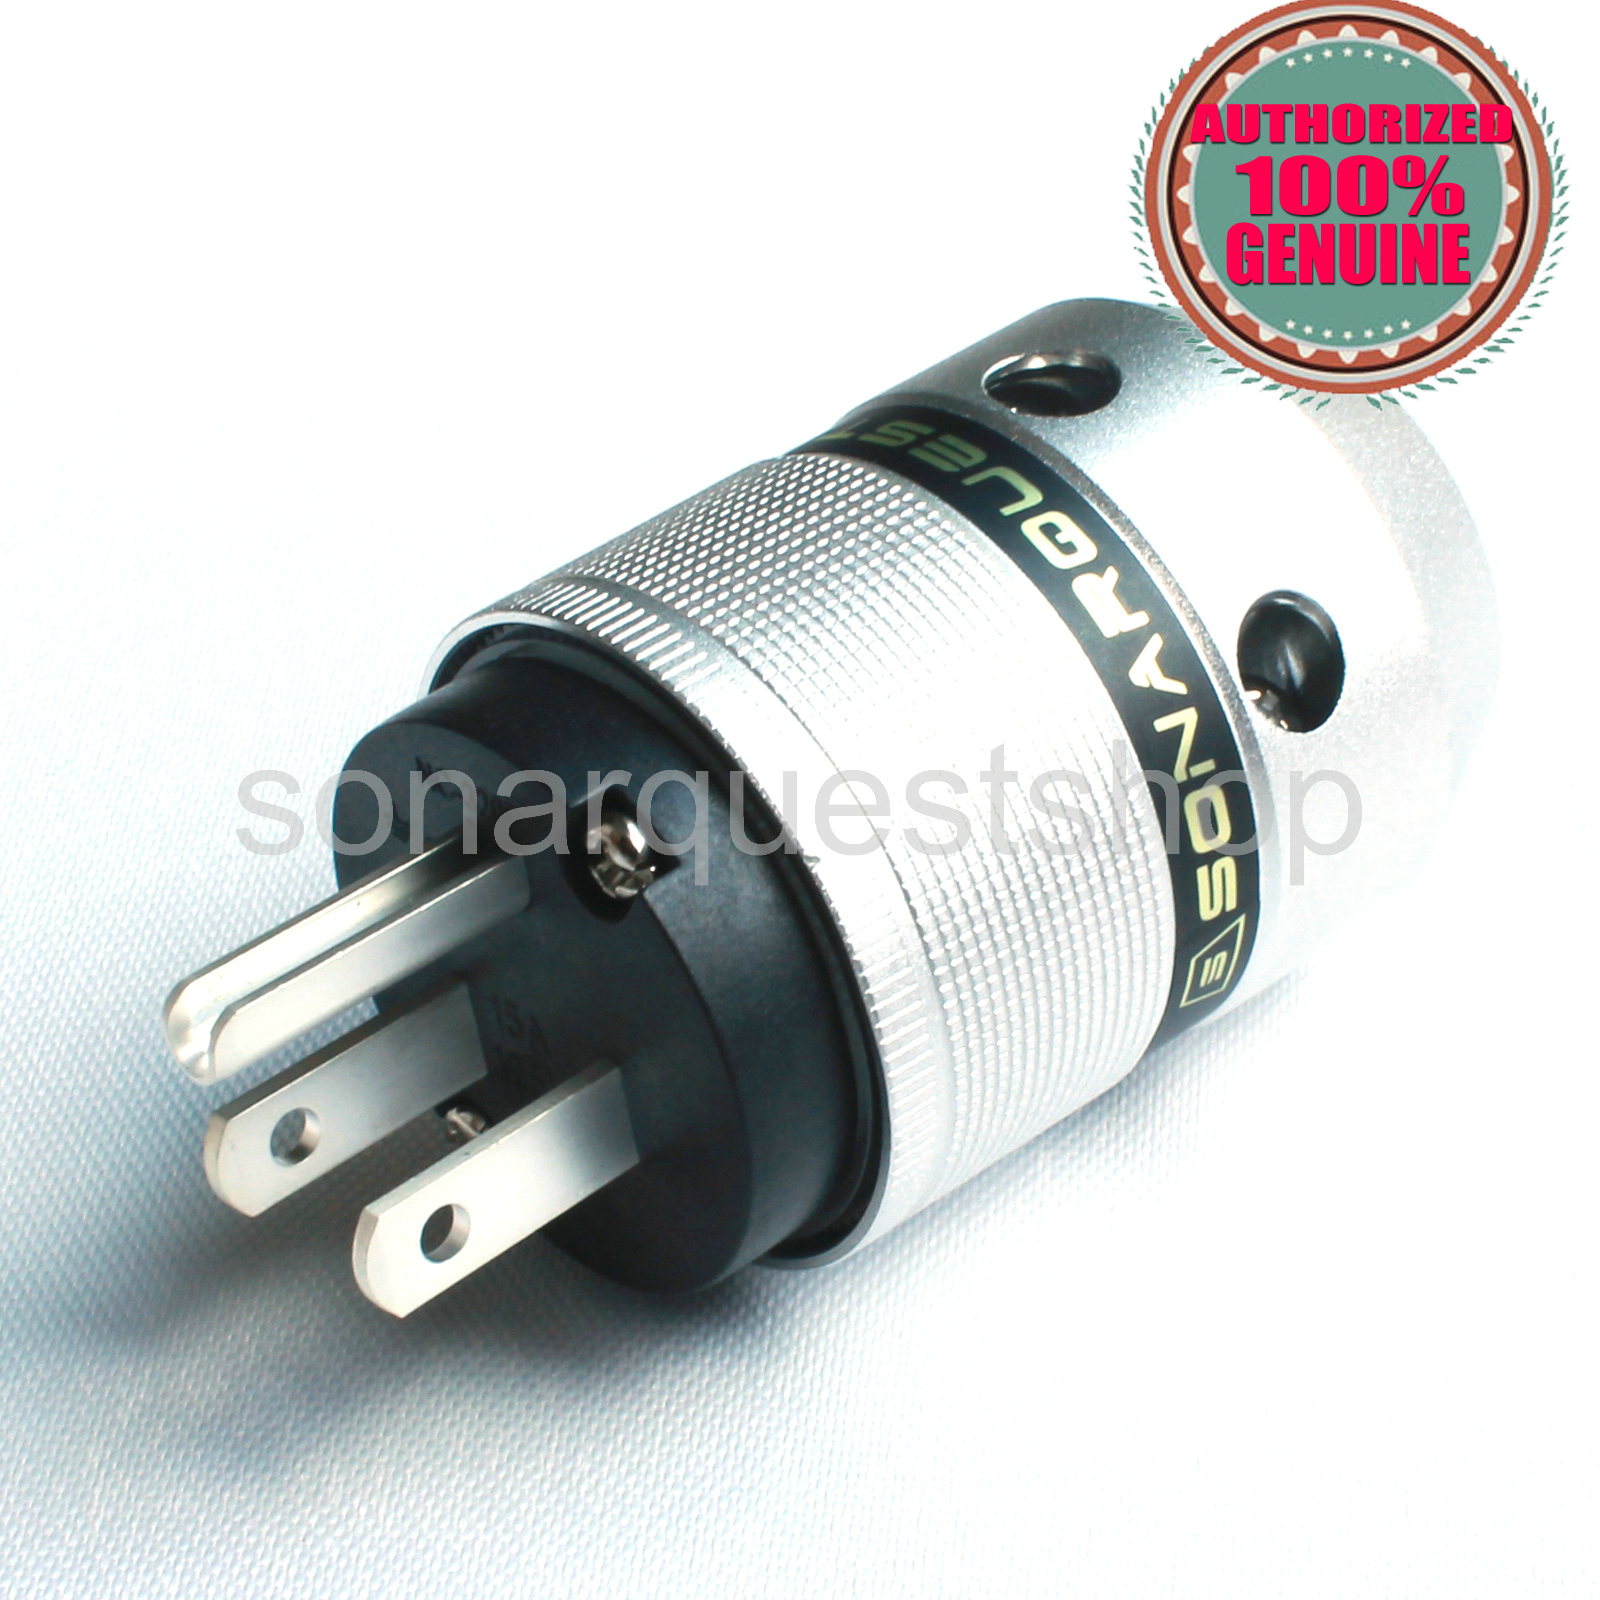 SONARQUEST P25 Ag(B) US silver Plated UP Black Aluminum alloy Power Plug